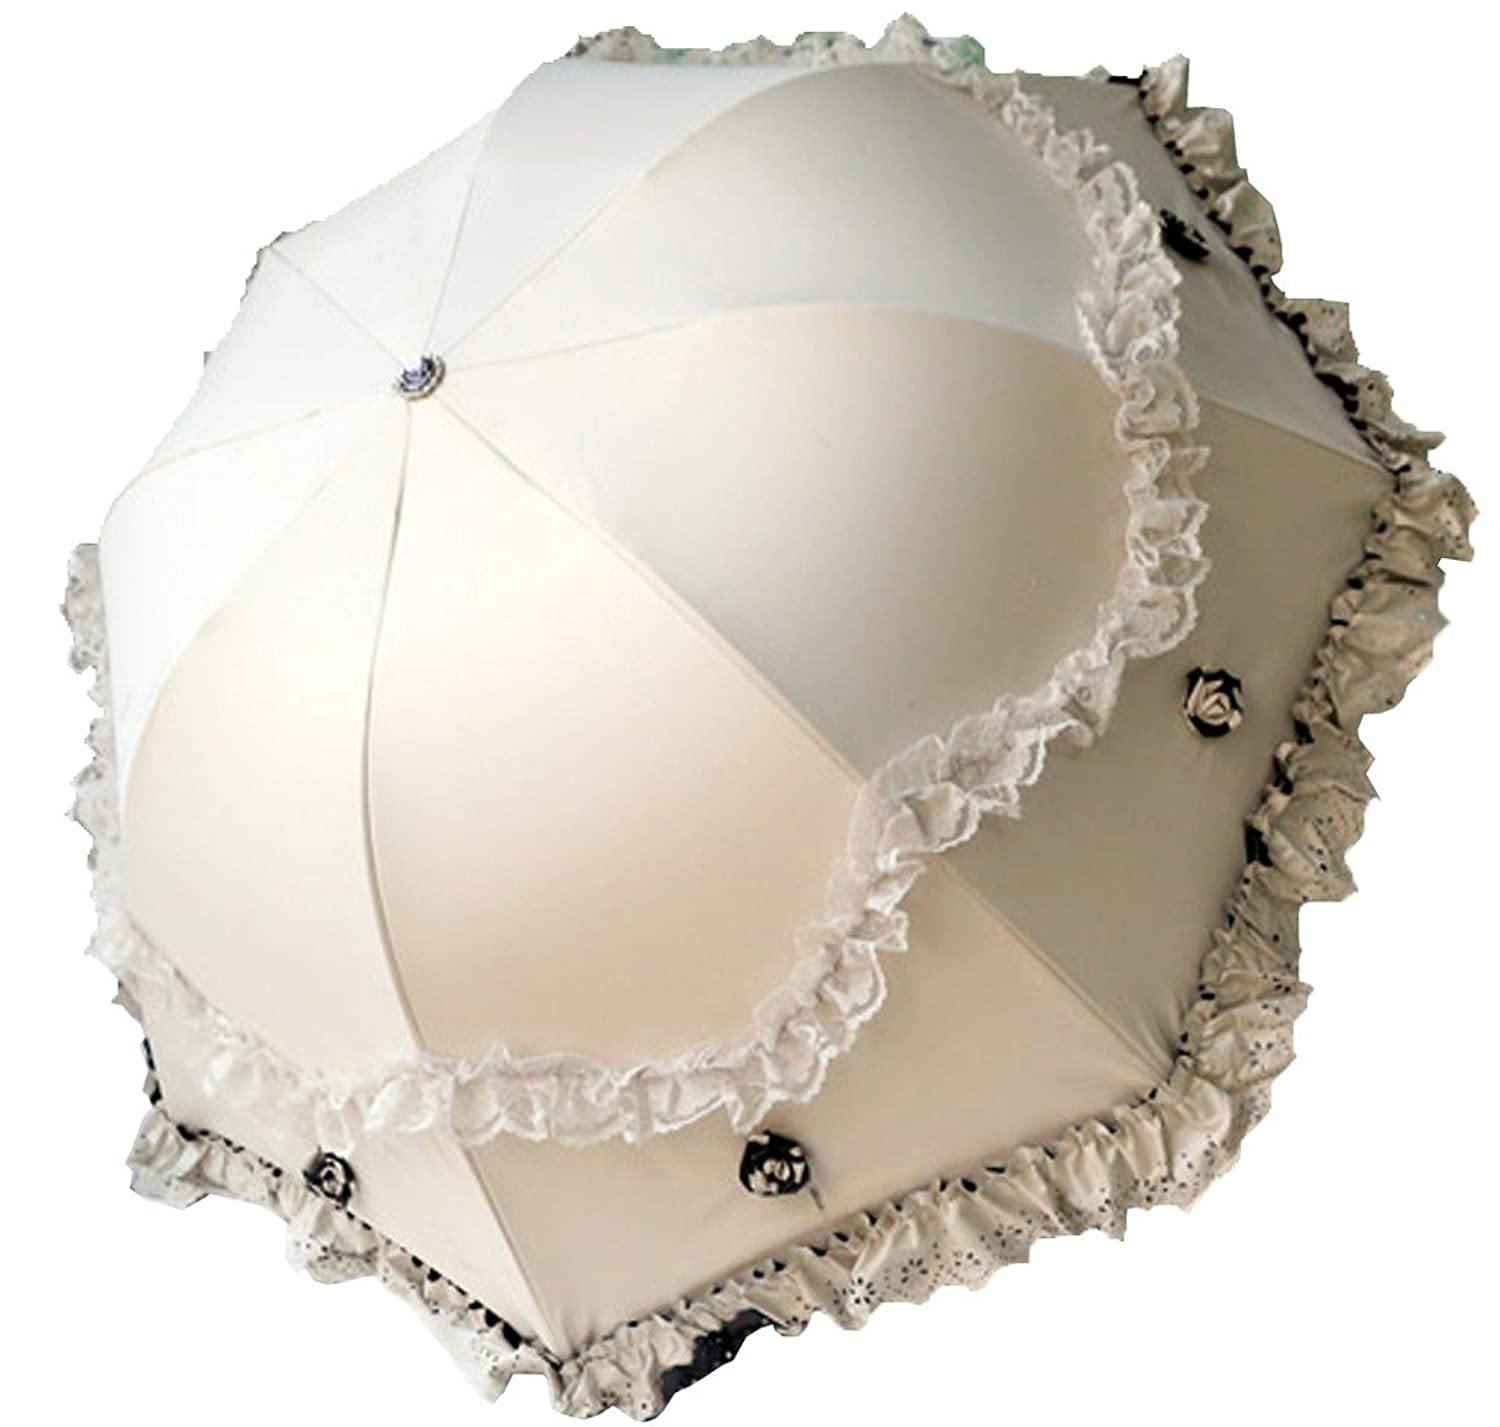 Victorian Parasols, Umbrella | Lace Parosol History Supergirl Women Parasol Travel Compact Lace Sunshade Anti-UV Windproof Rain Umbrella $28.99 AT vintagedancer.com